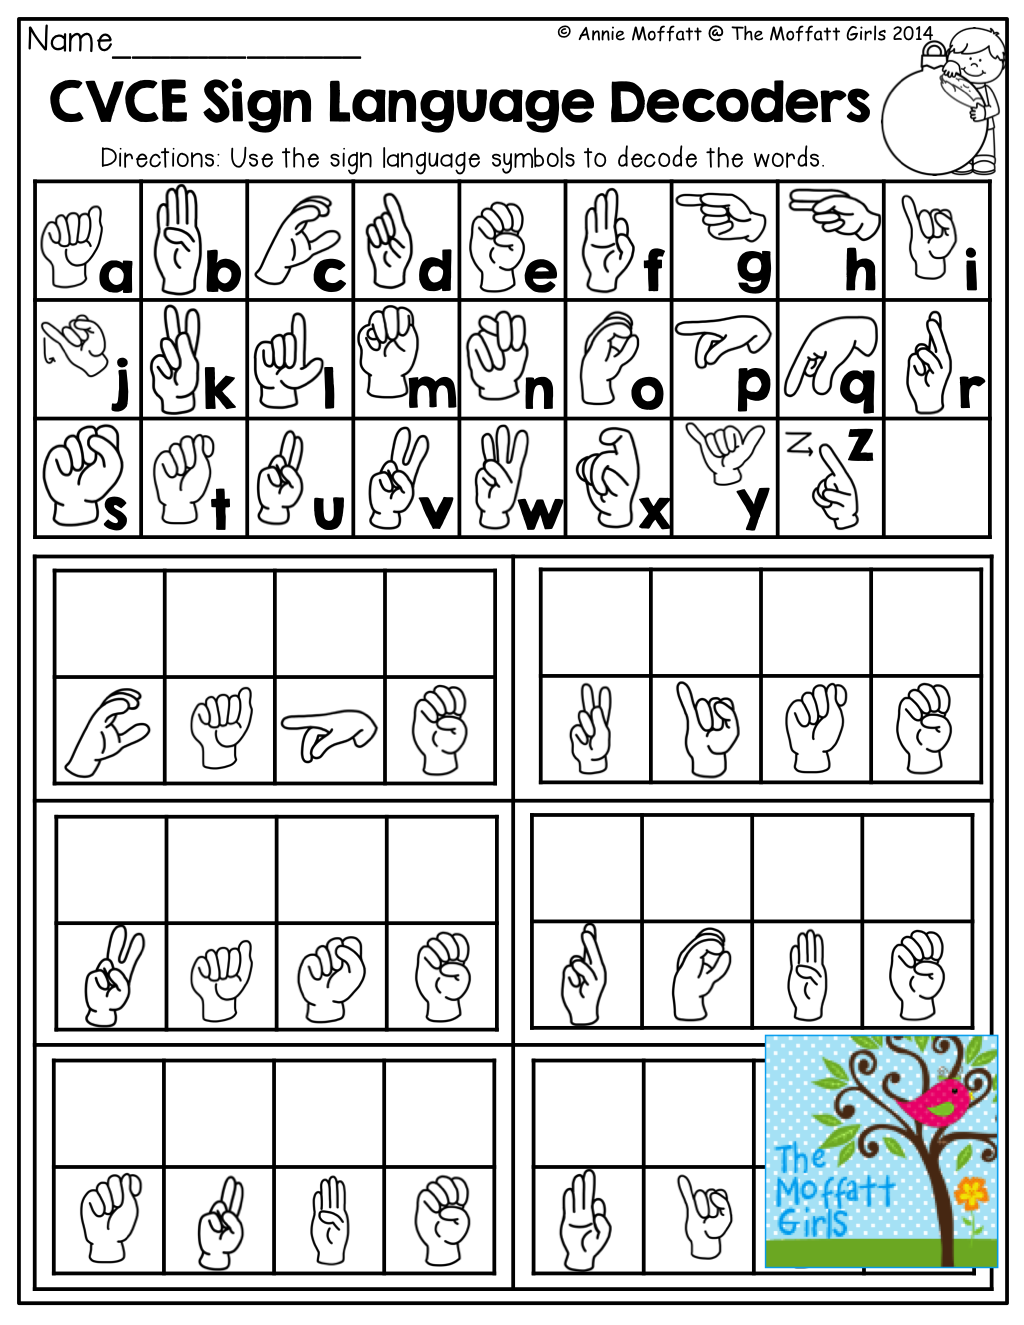 Cvce Sign Language Decoders And Tons Of Other Fun And